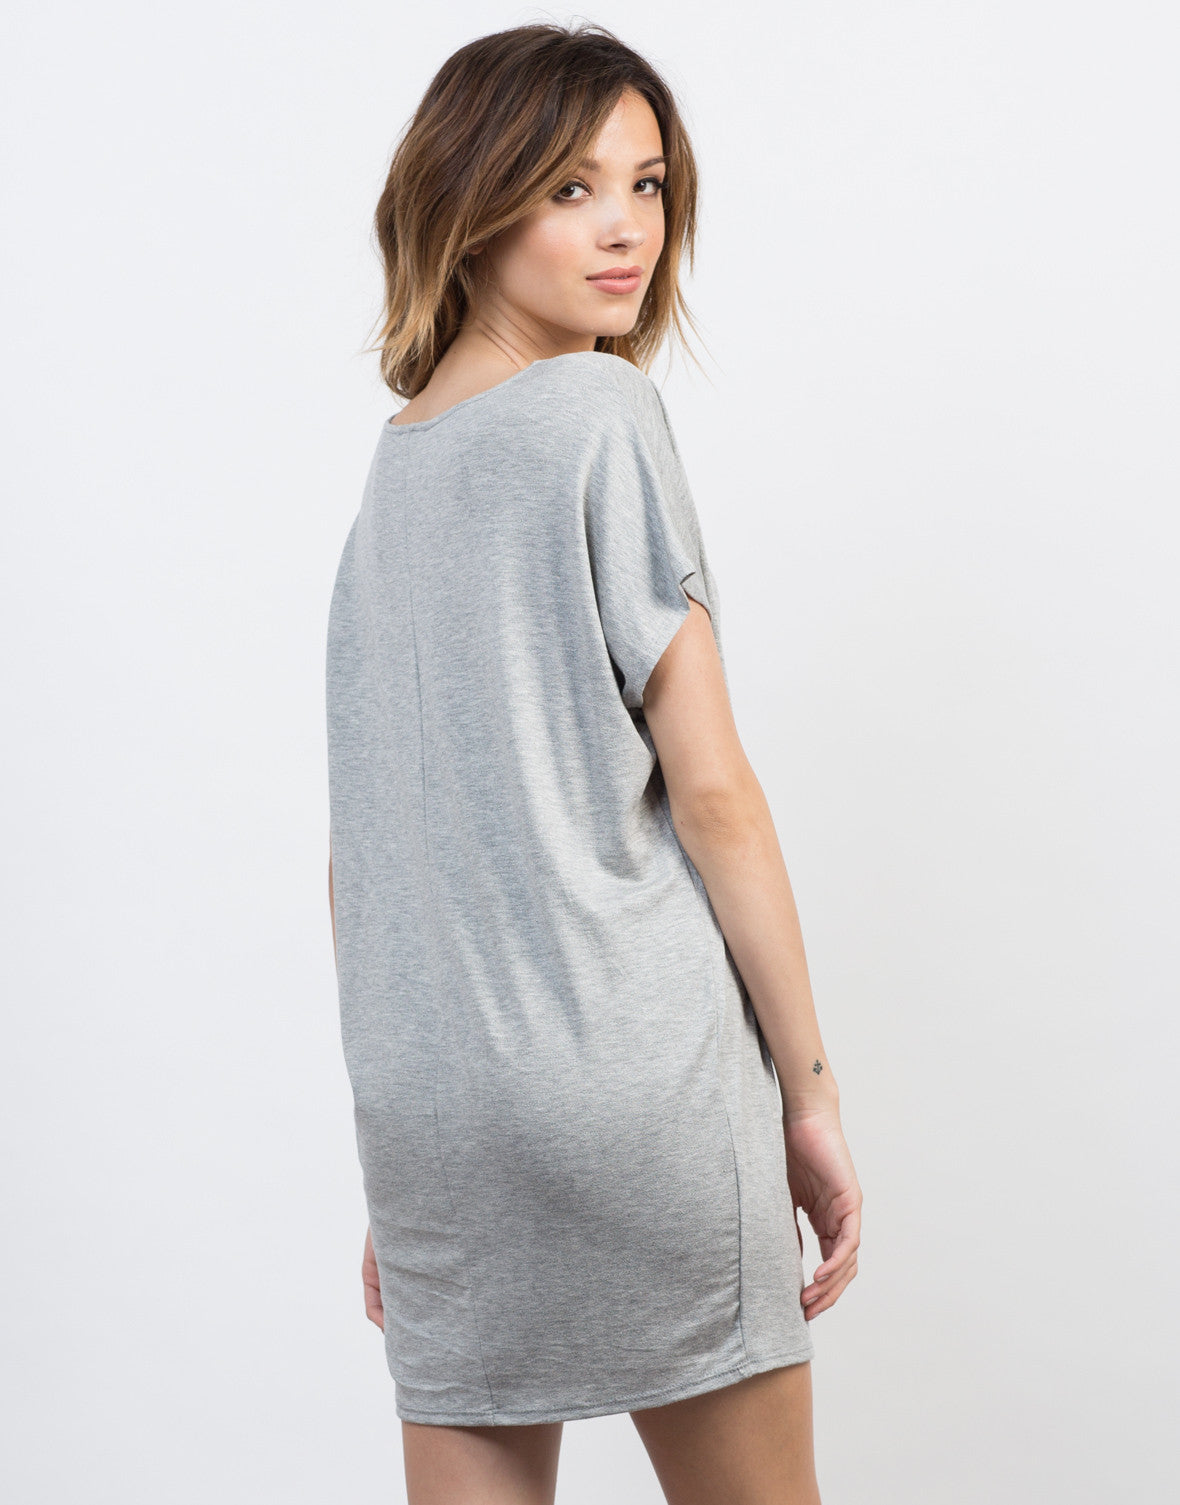 Back View of Oversized Dolman Dress